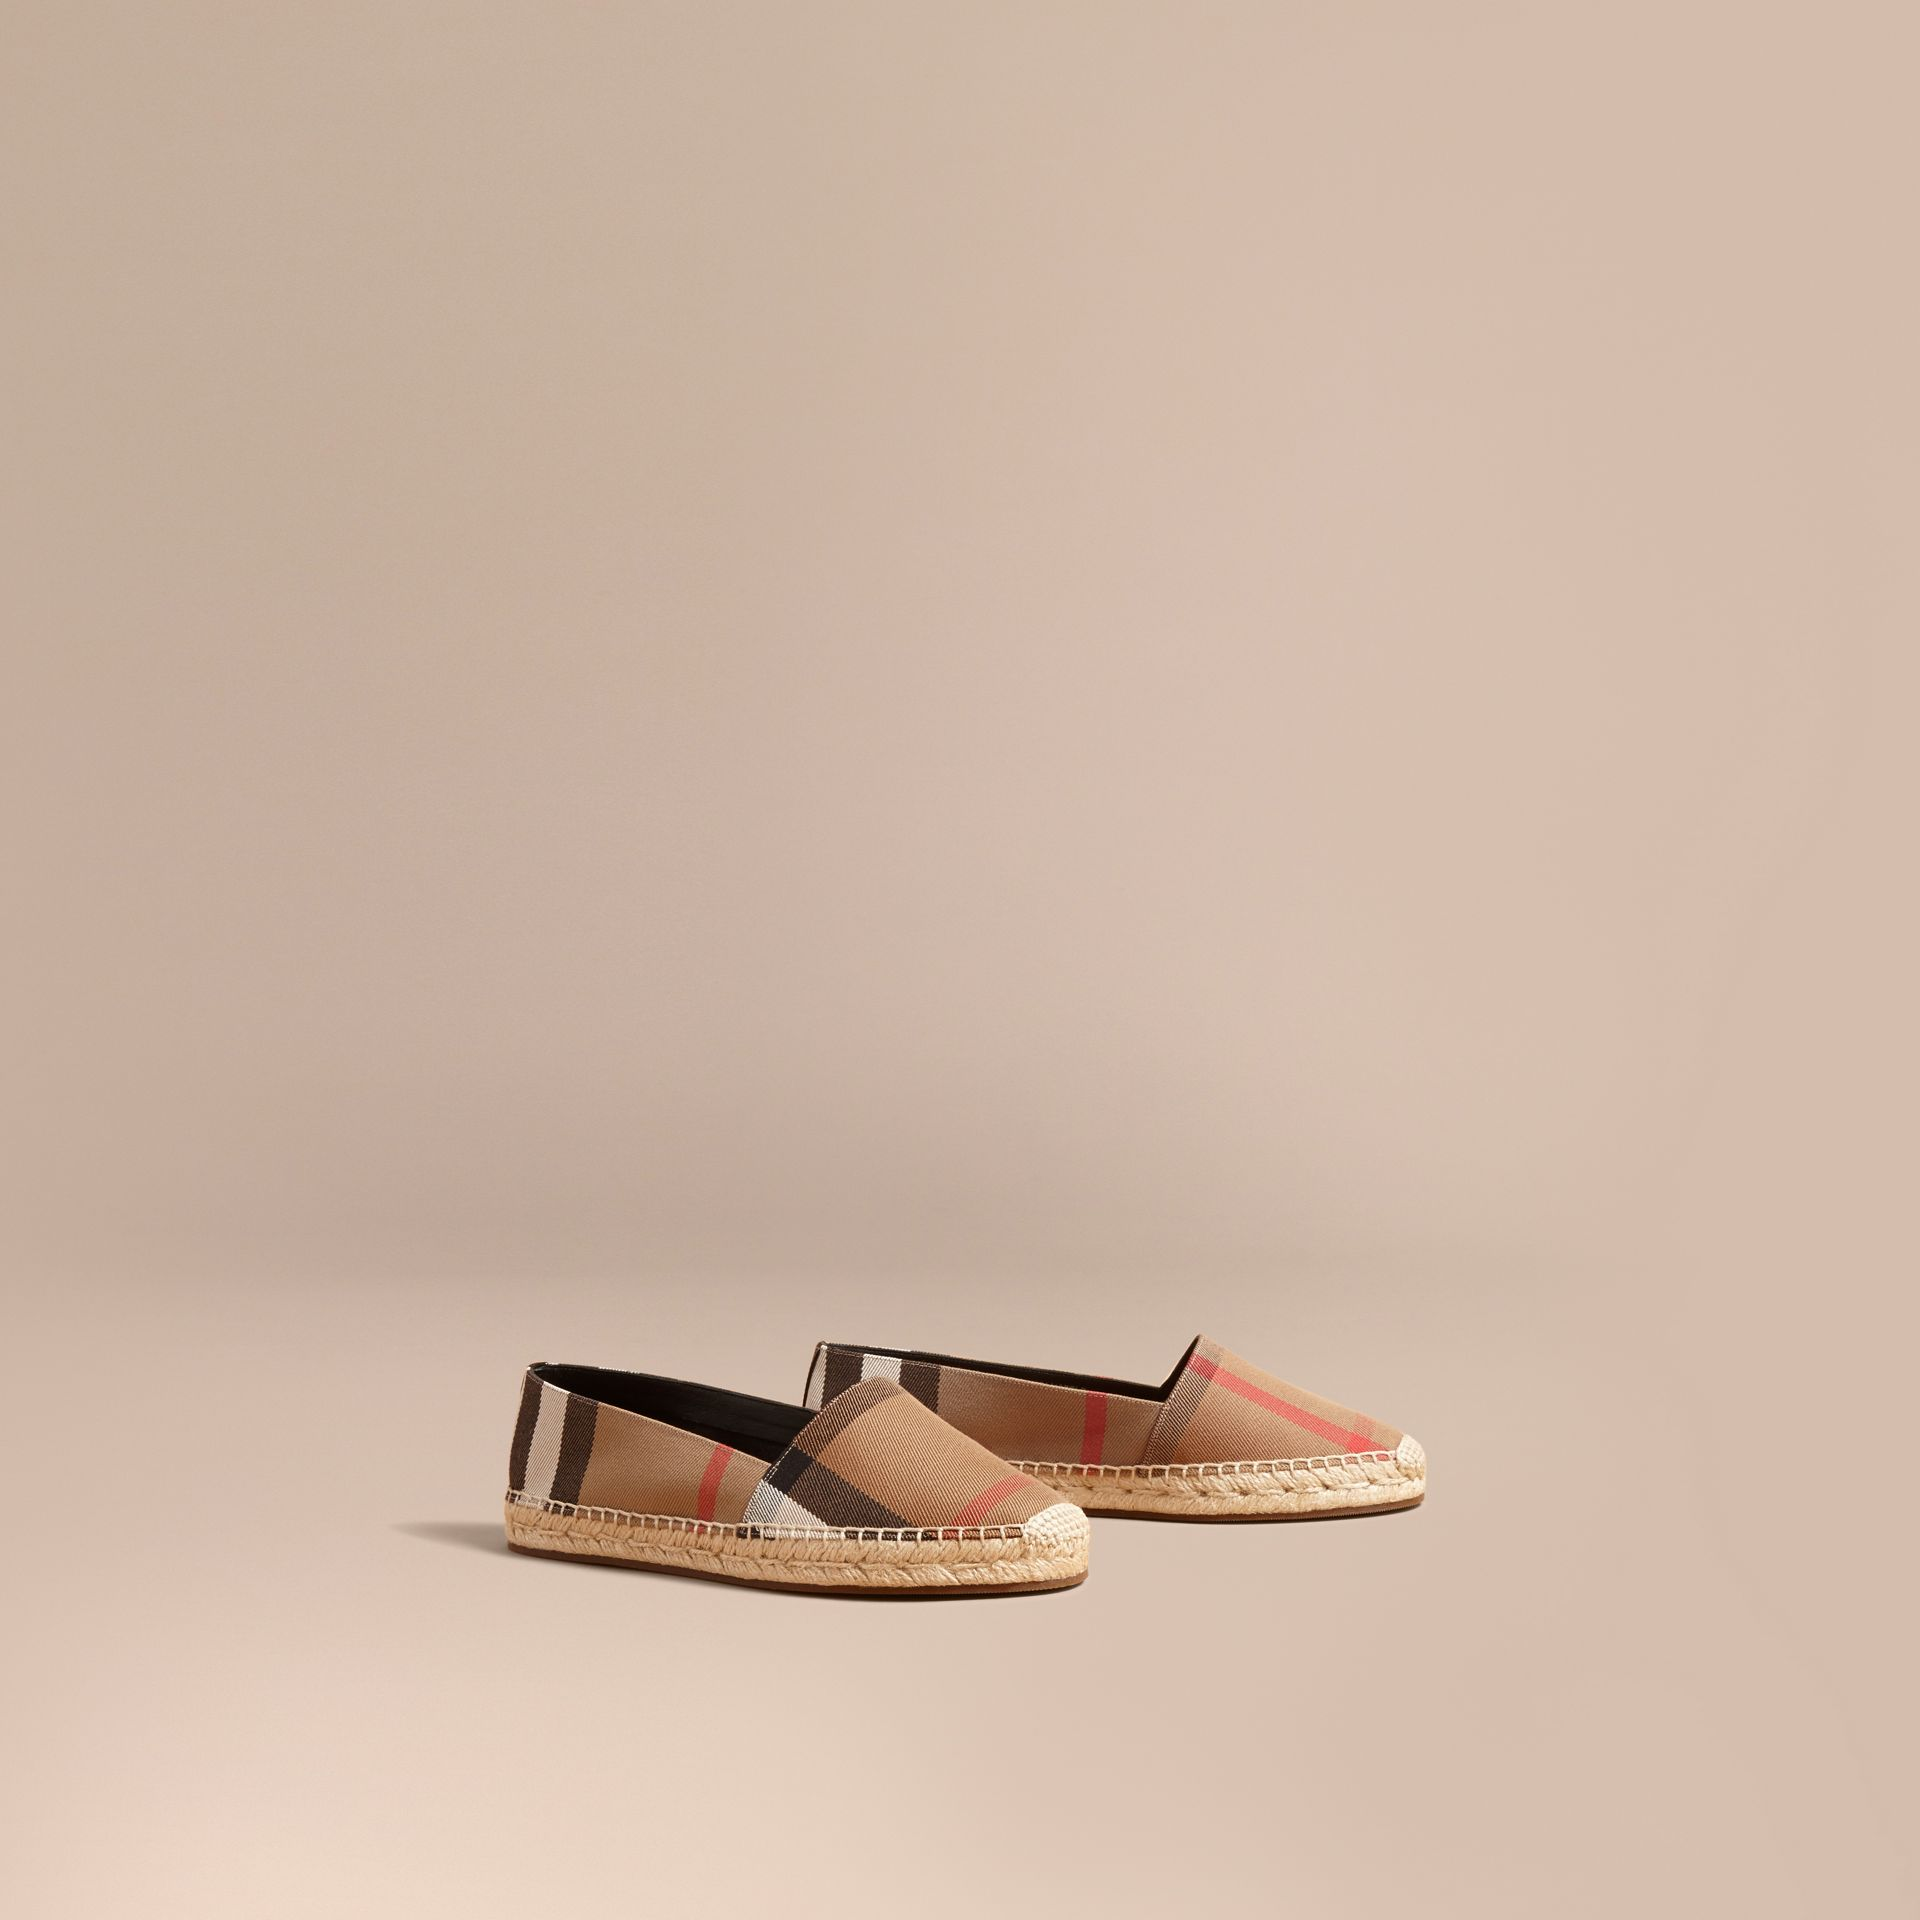 Leather Trim Canvas Check Espadrilles in Classic - Women | Burberry - gallery image 0